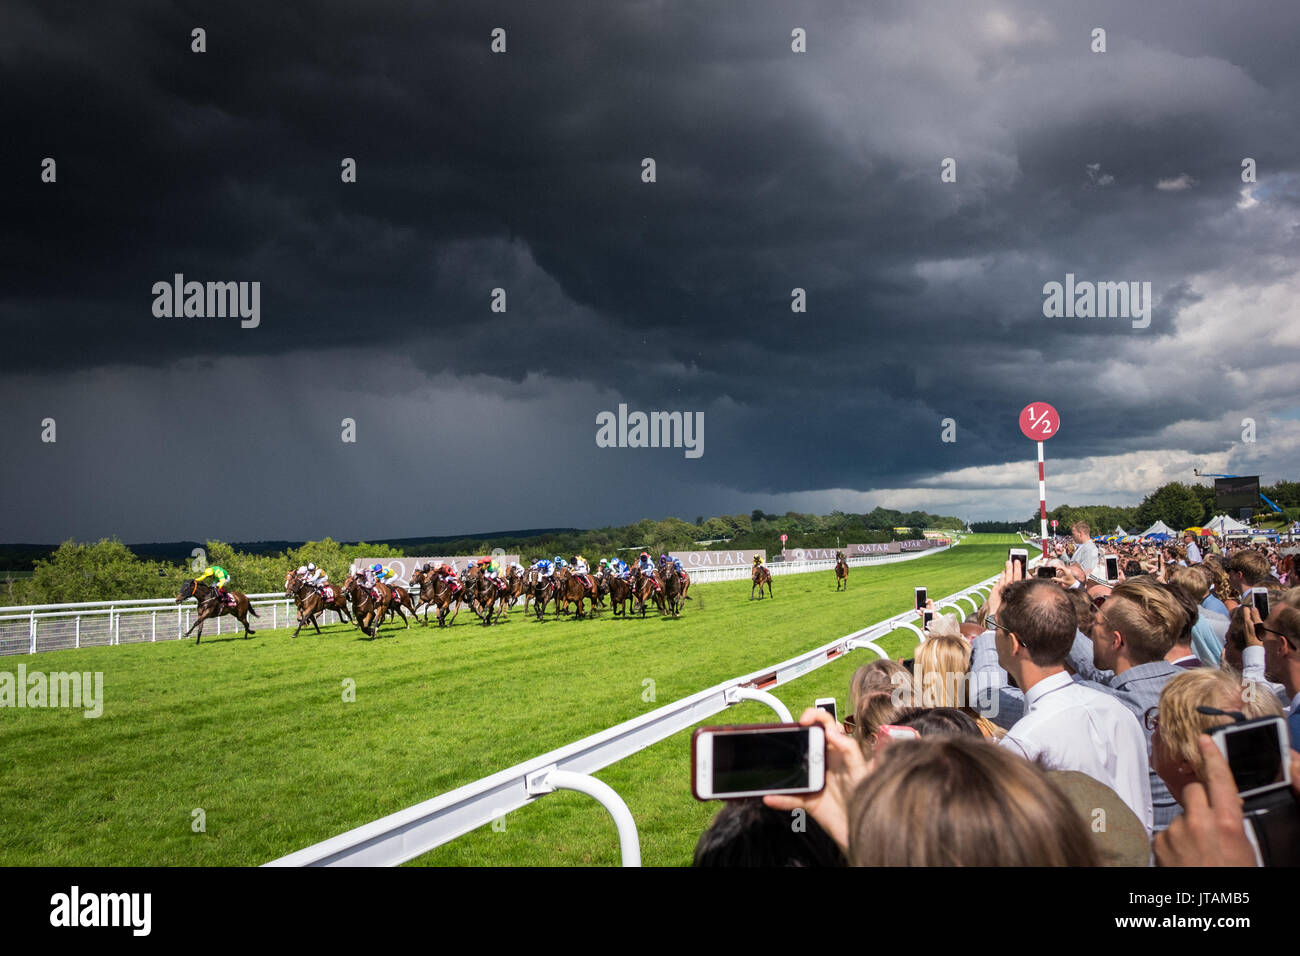 Gewitterwolken Pass während der Pferderennen in Glorious Goodwood 2017 in West Sussex Stockbild